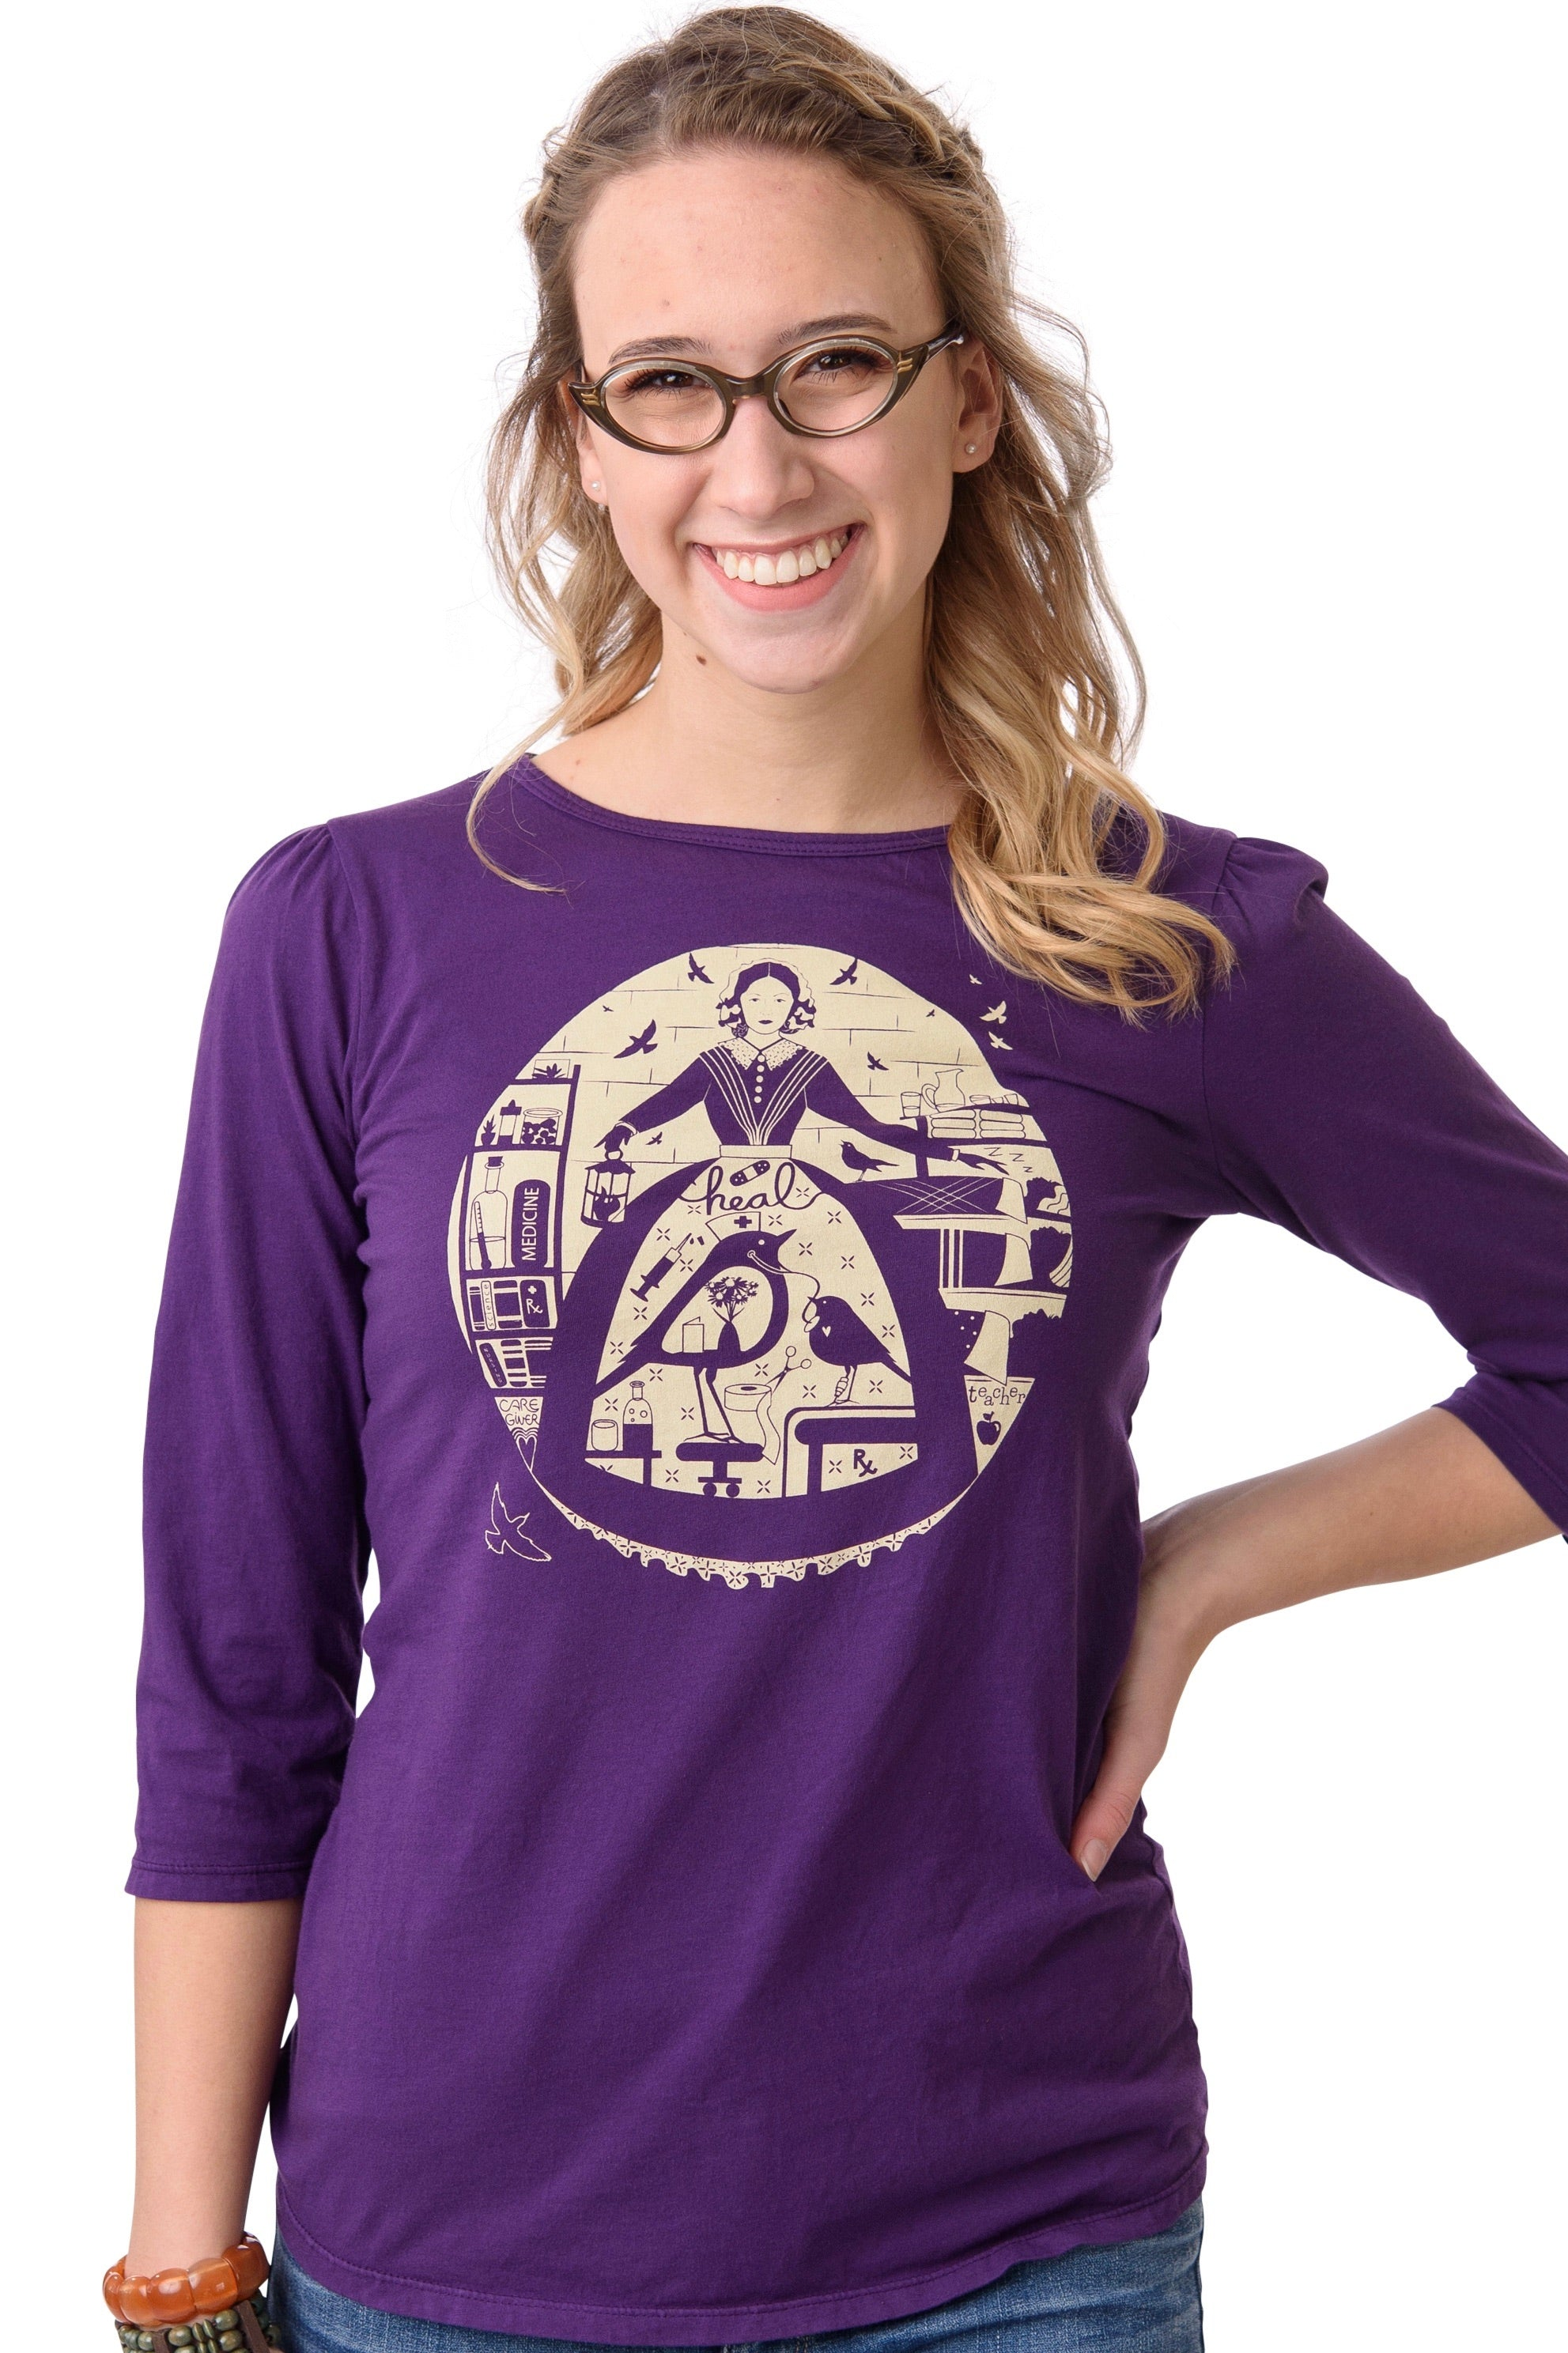 The Nurse T-Shirt Top in Purple by Blue Platypus